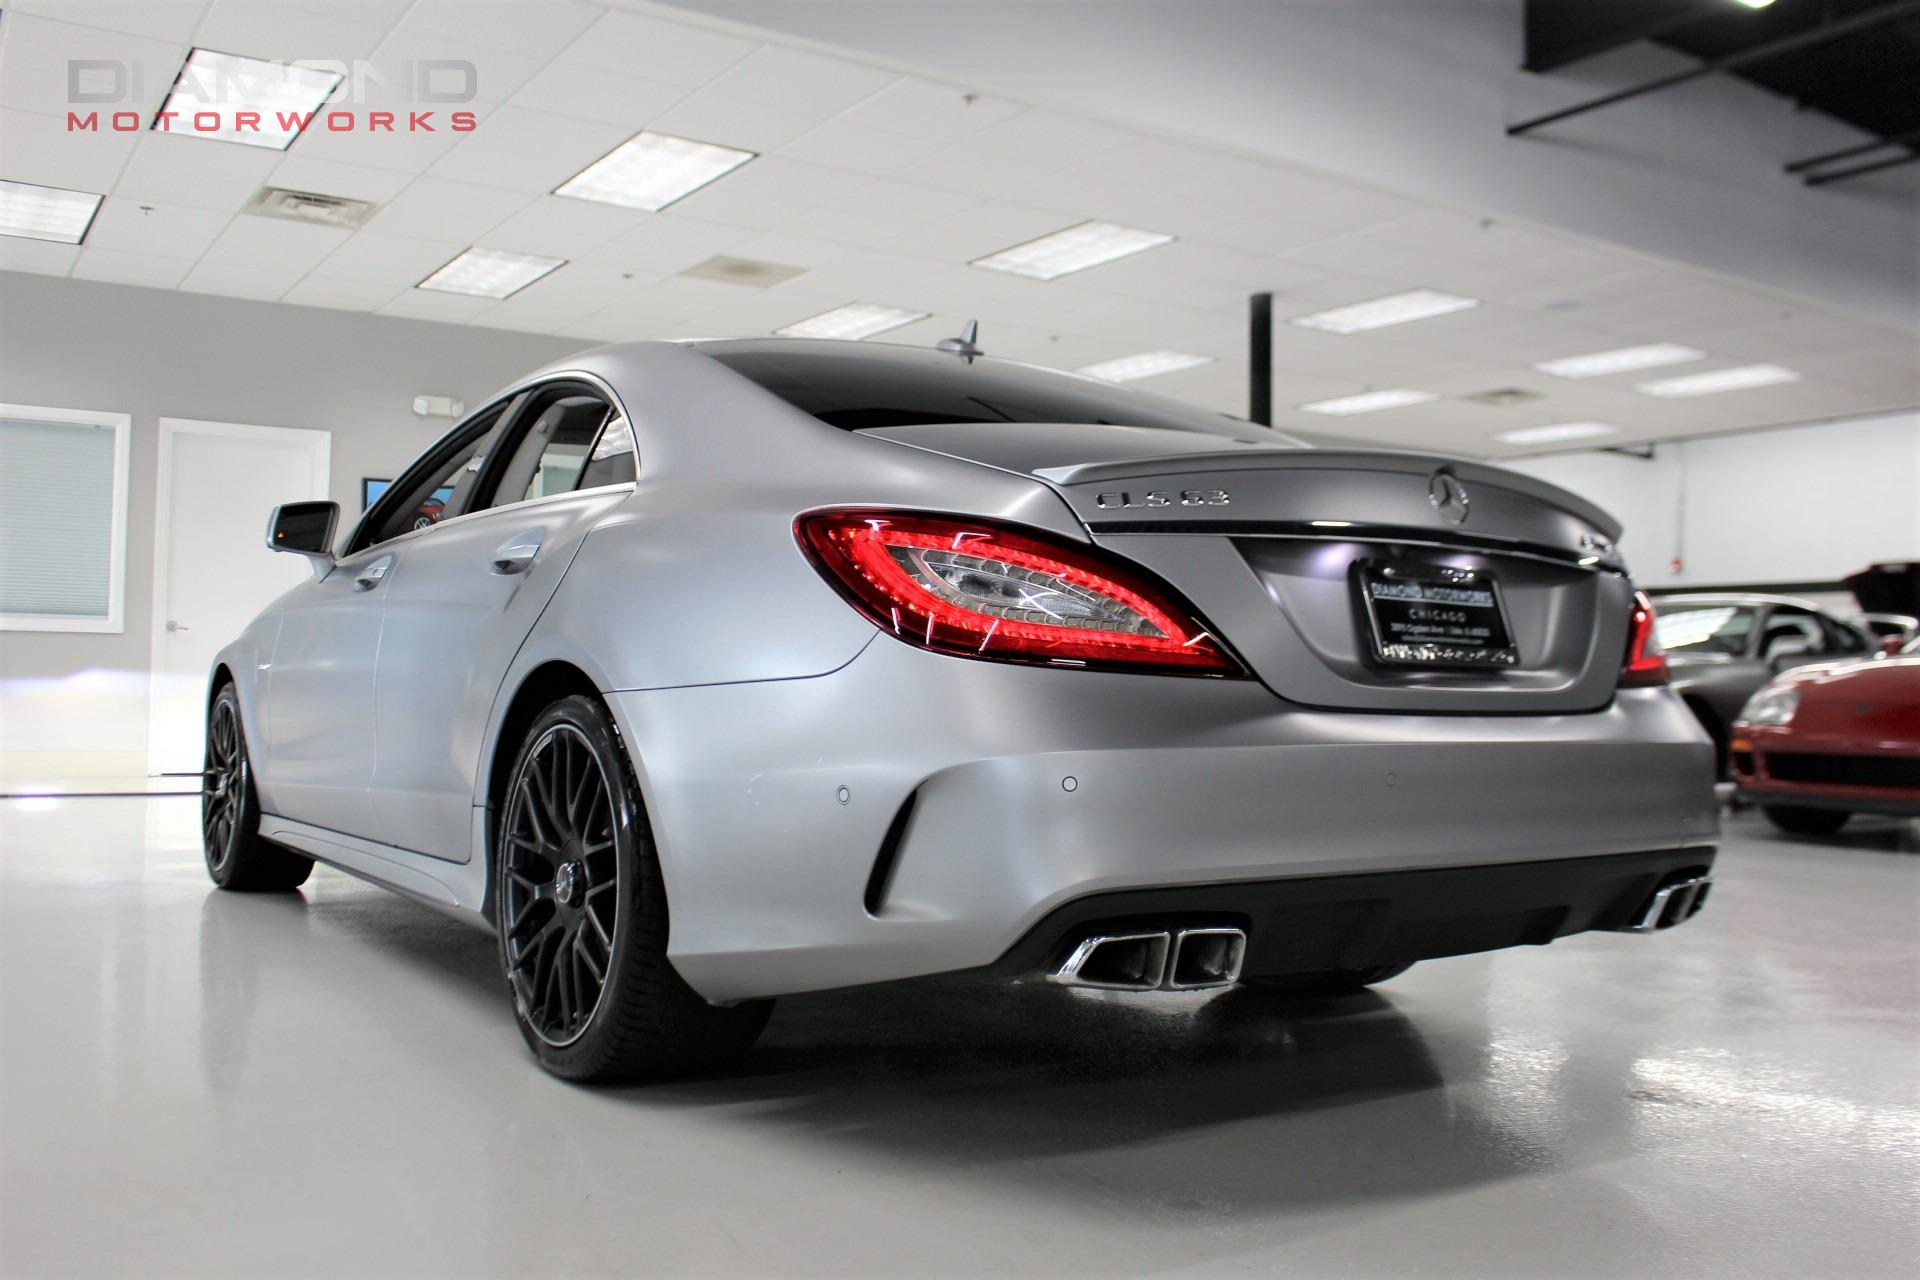 2015 Mercedes Benz CLS 63 AMG S CLS 63 AMG S Model Stock